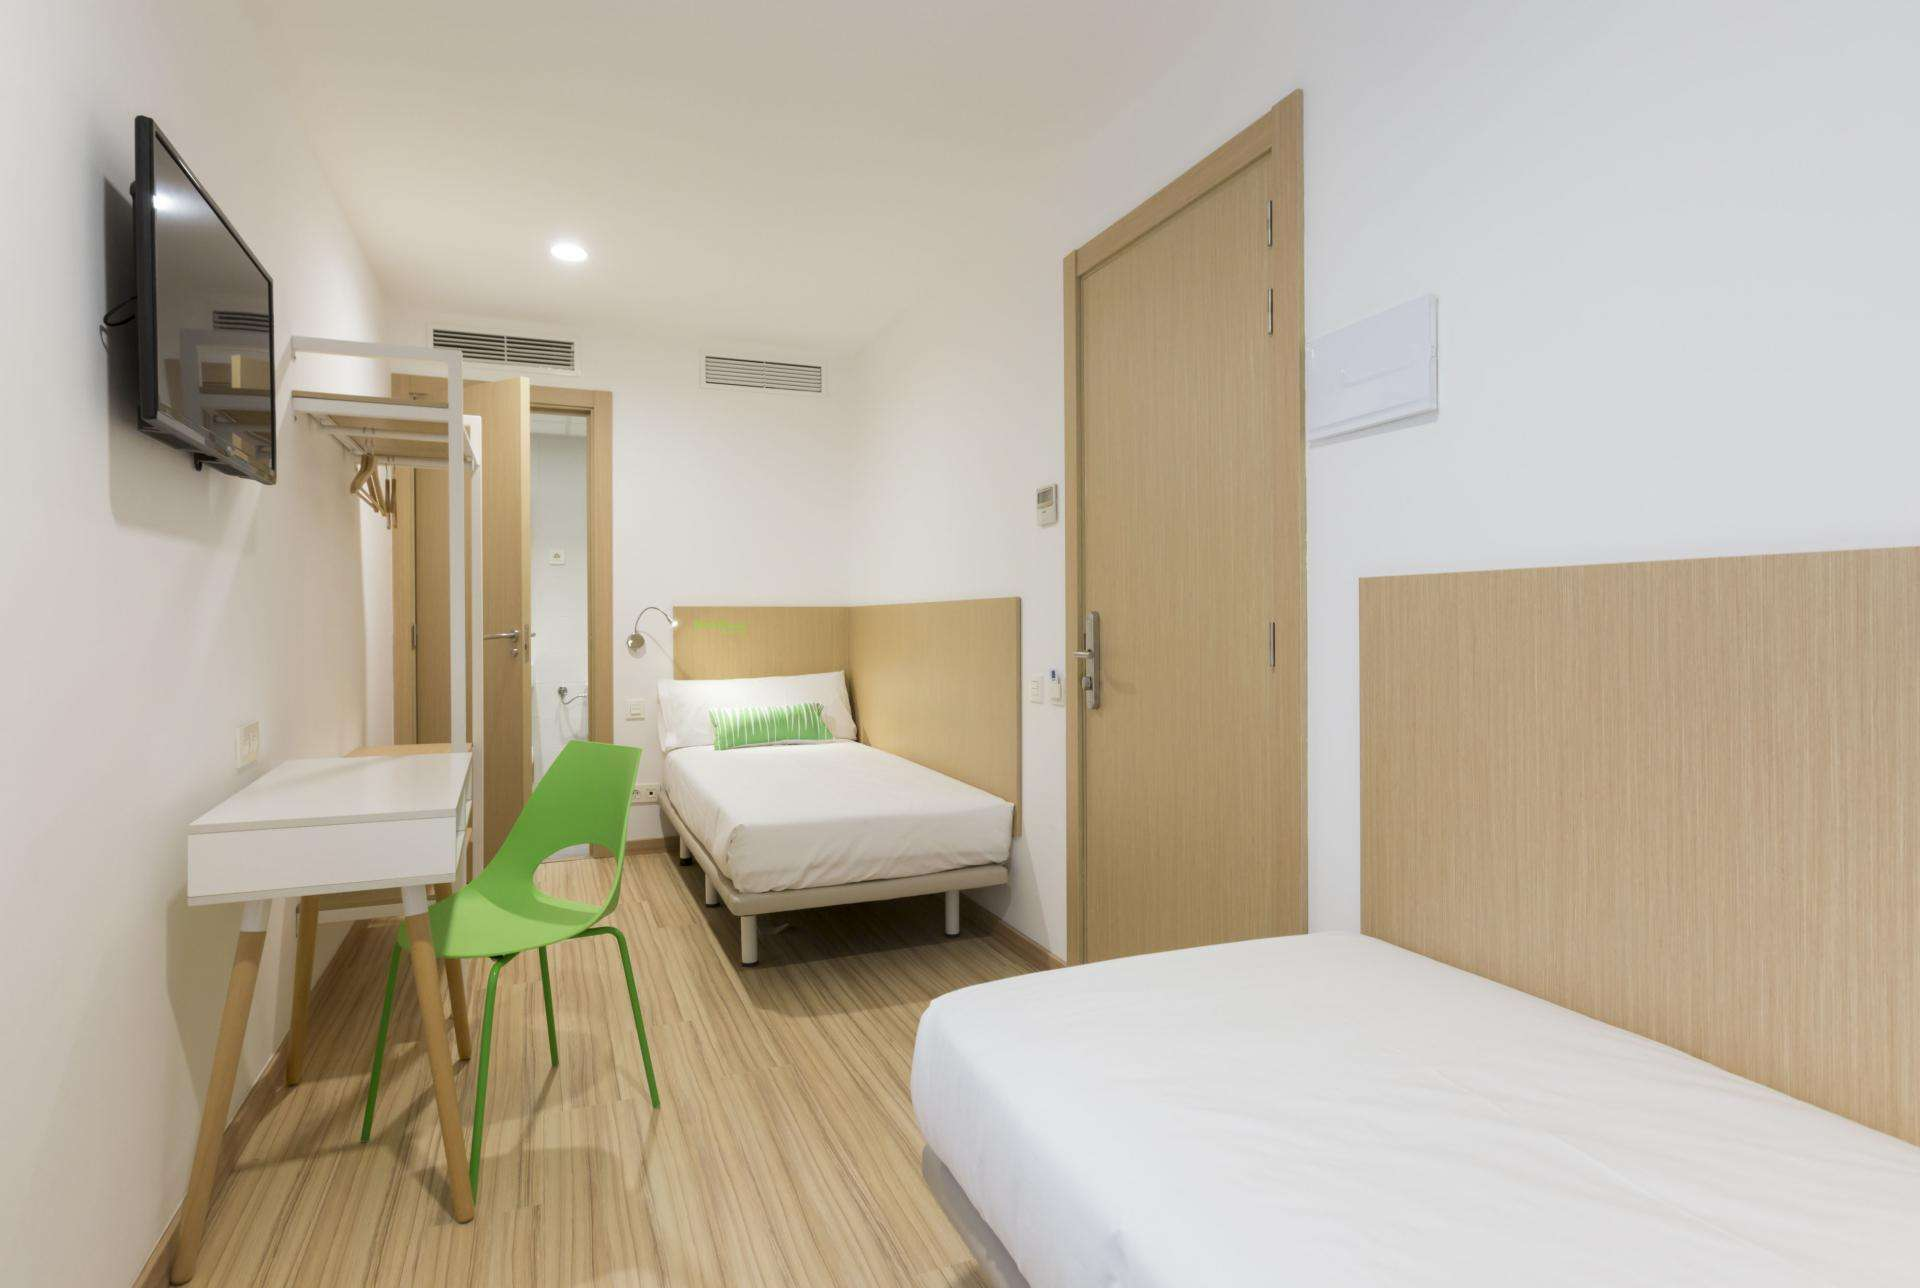 Double economy room with two separated beds